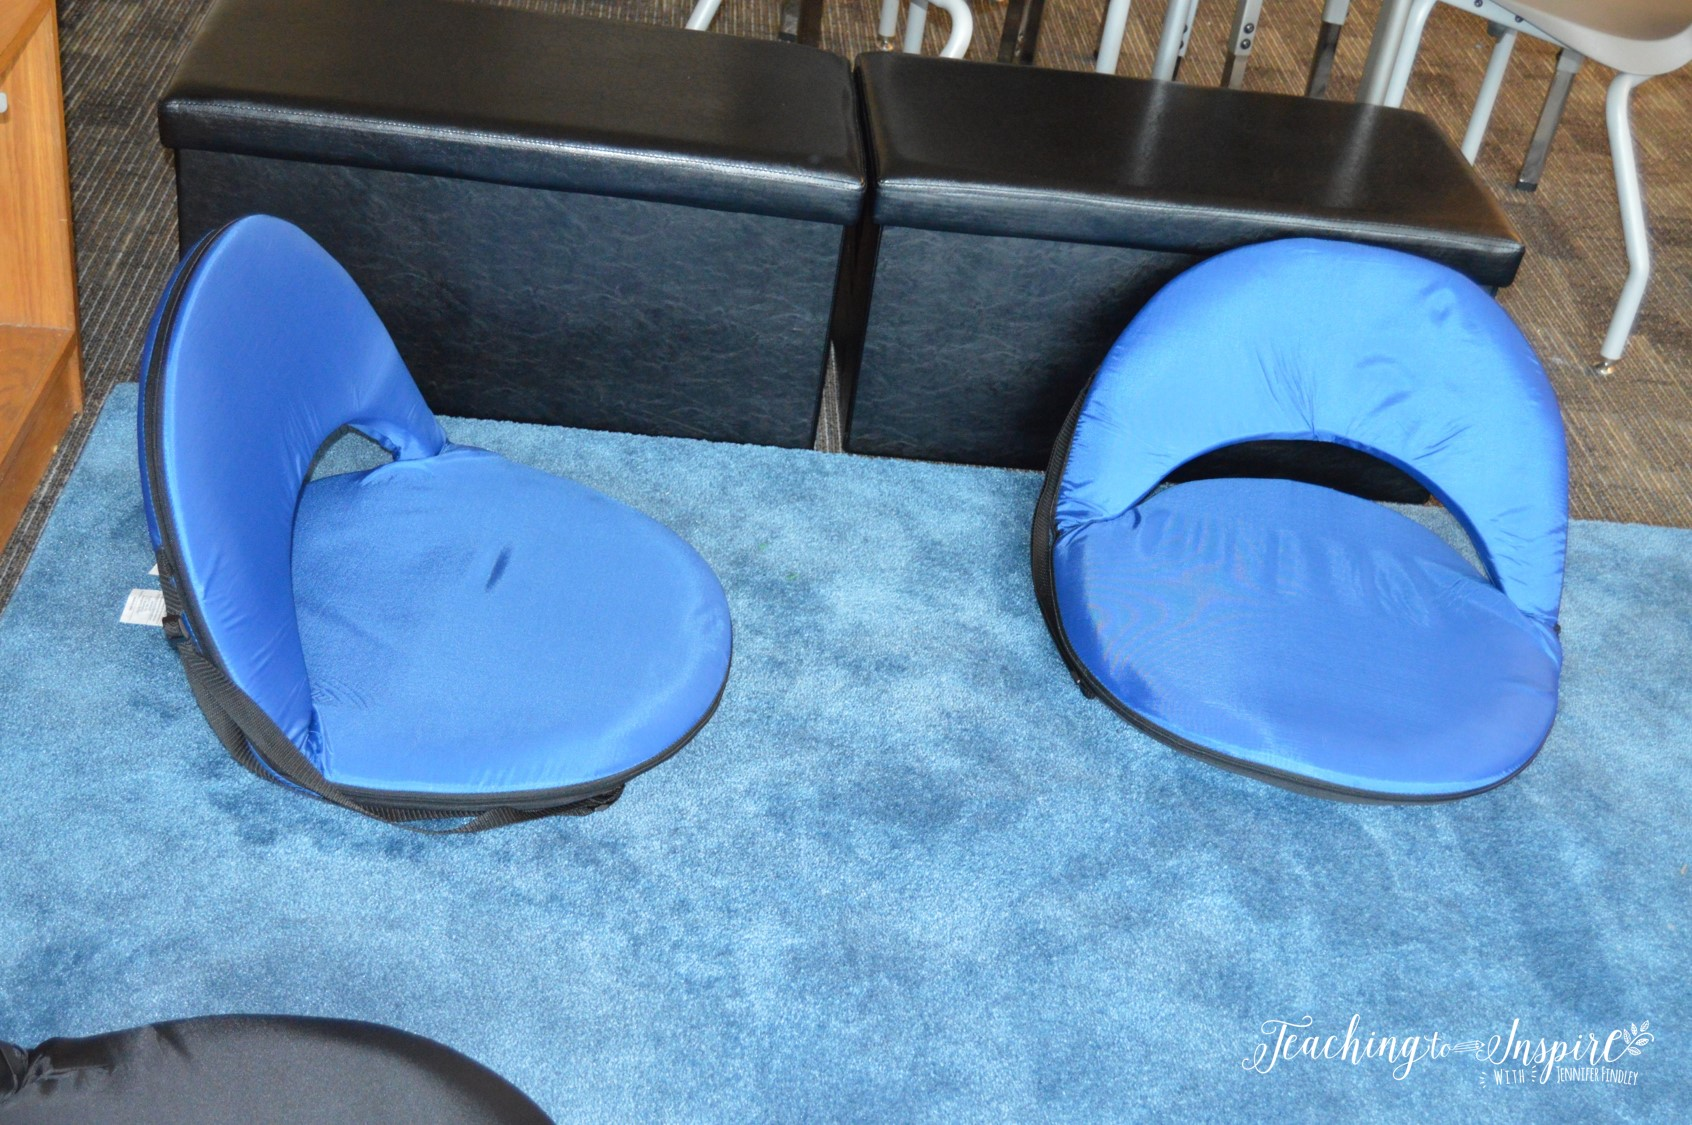 Alternative seating in the classroom can be a huge motivator for student engagement and learning. Read this post to learn how one teacher uses alternative seating in literacy.